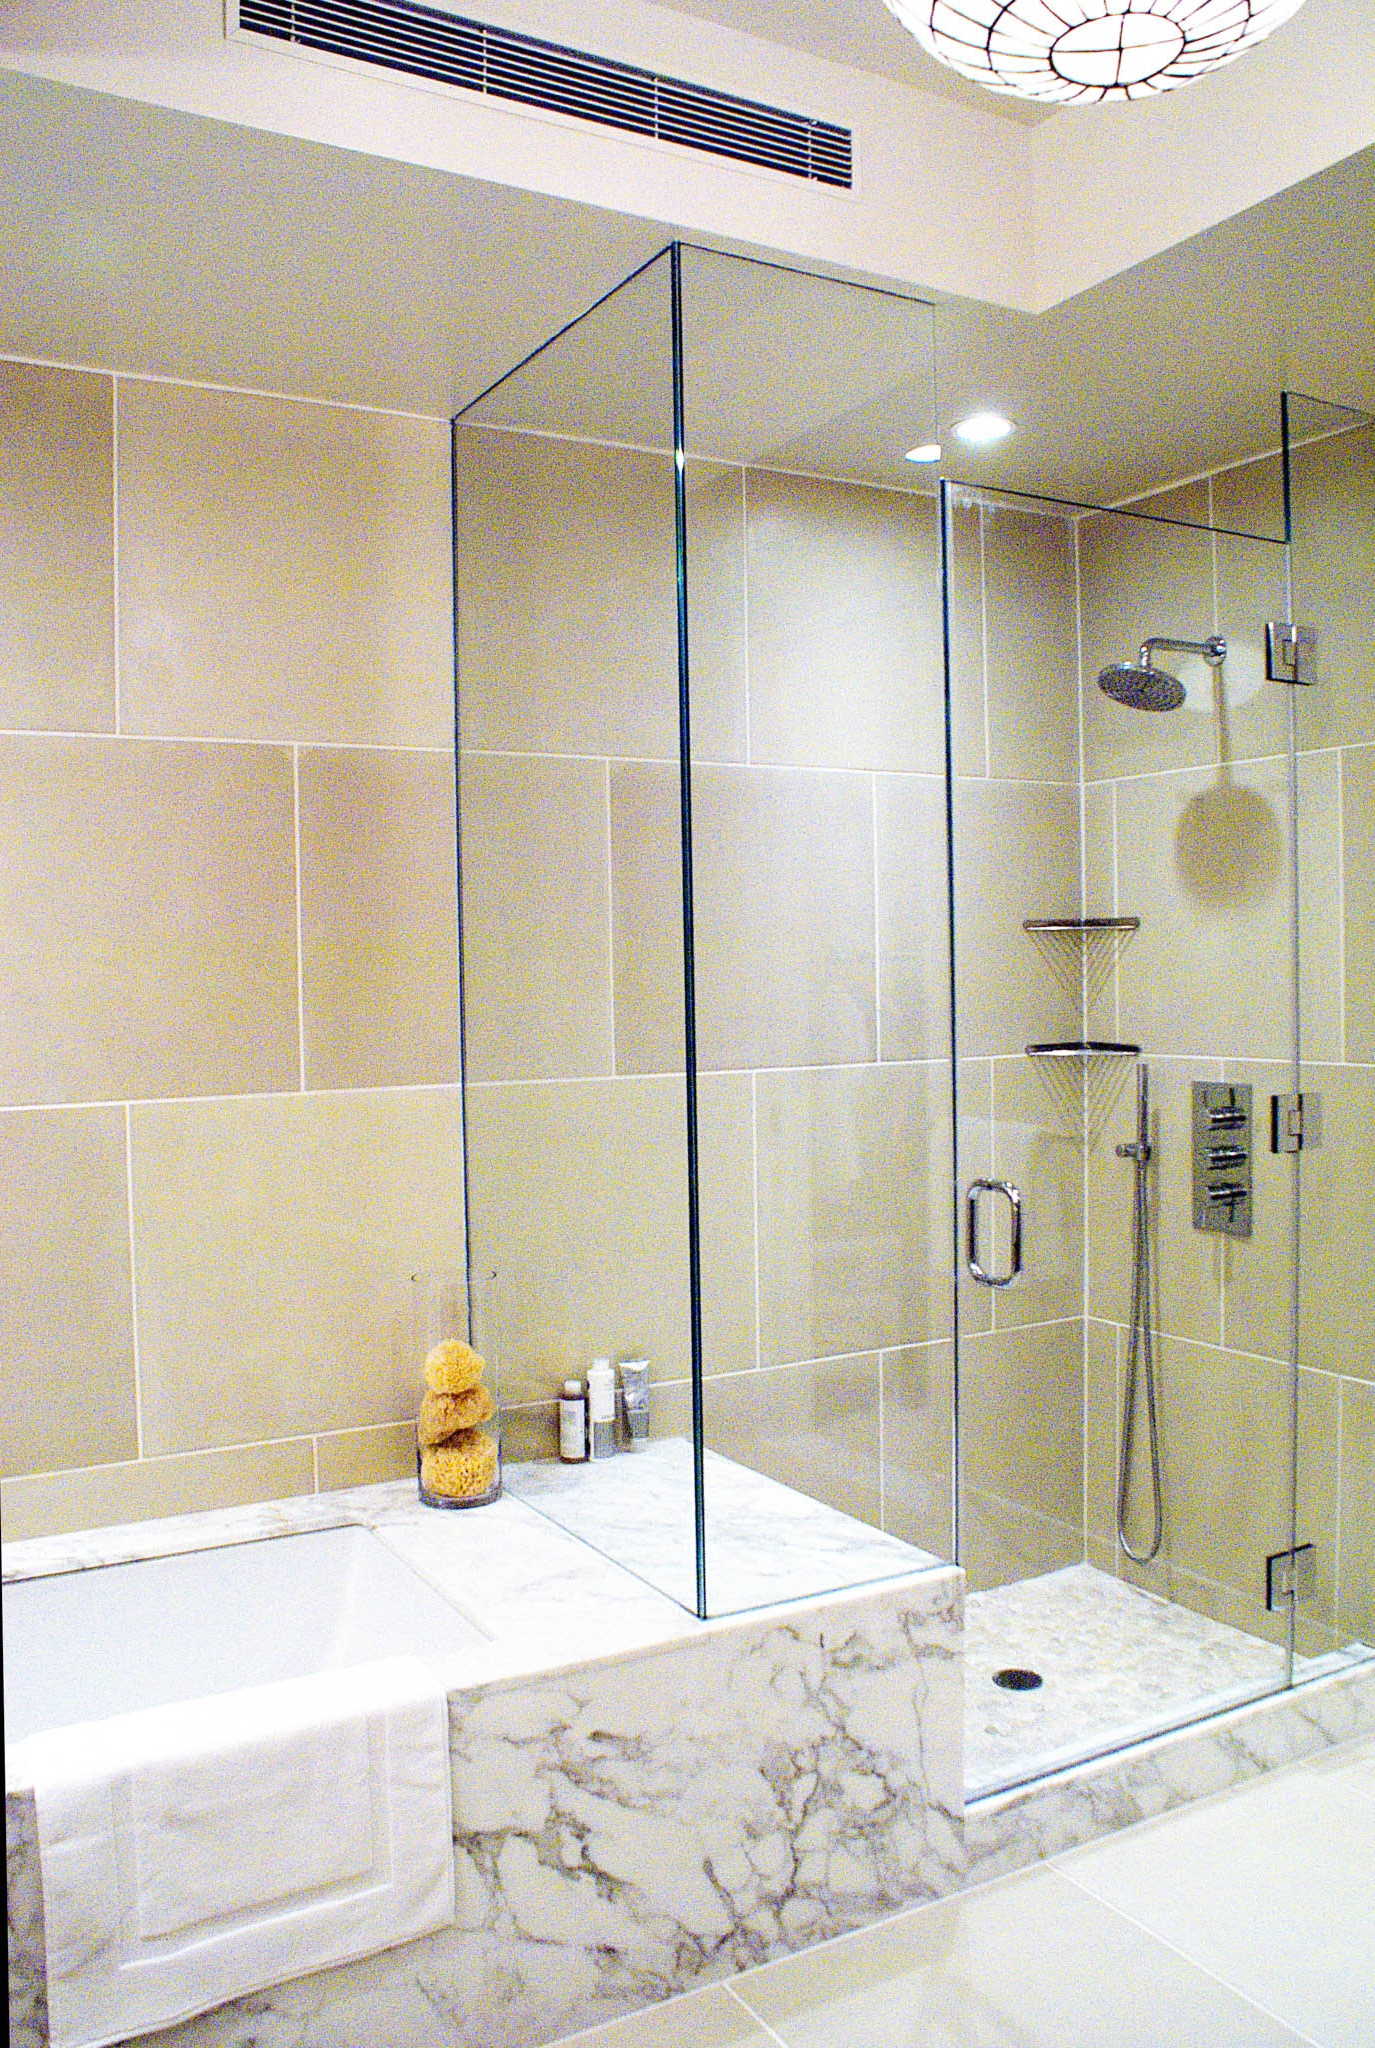 Bathroom Shower And Tub Combination Ideas #15030